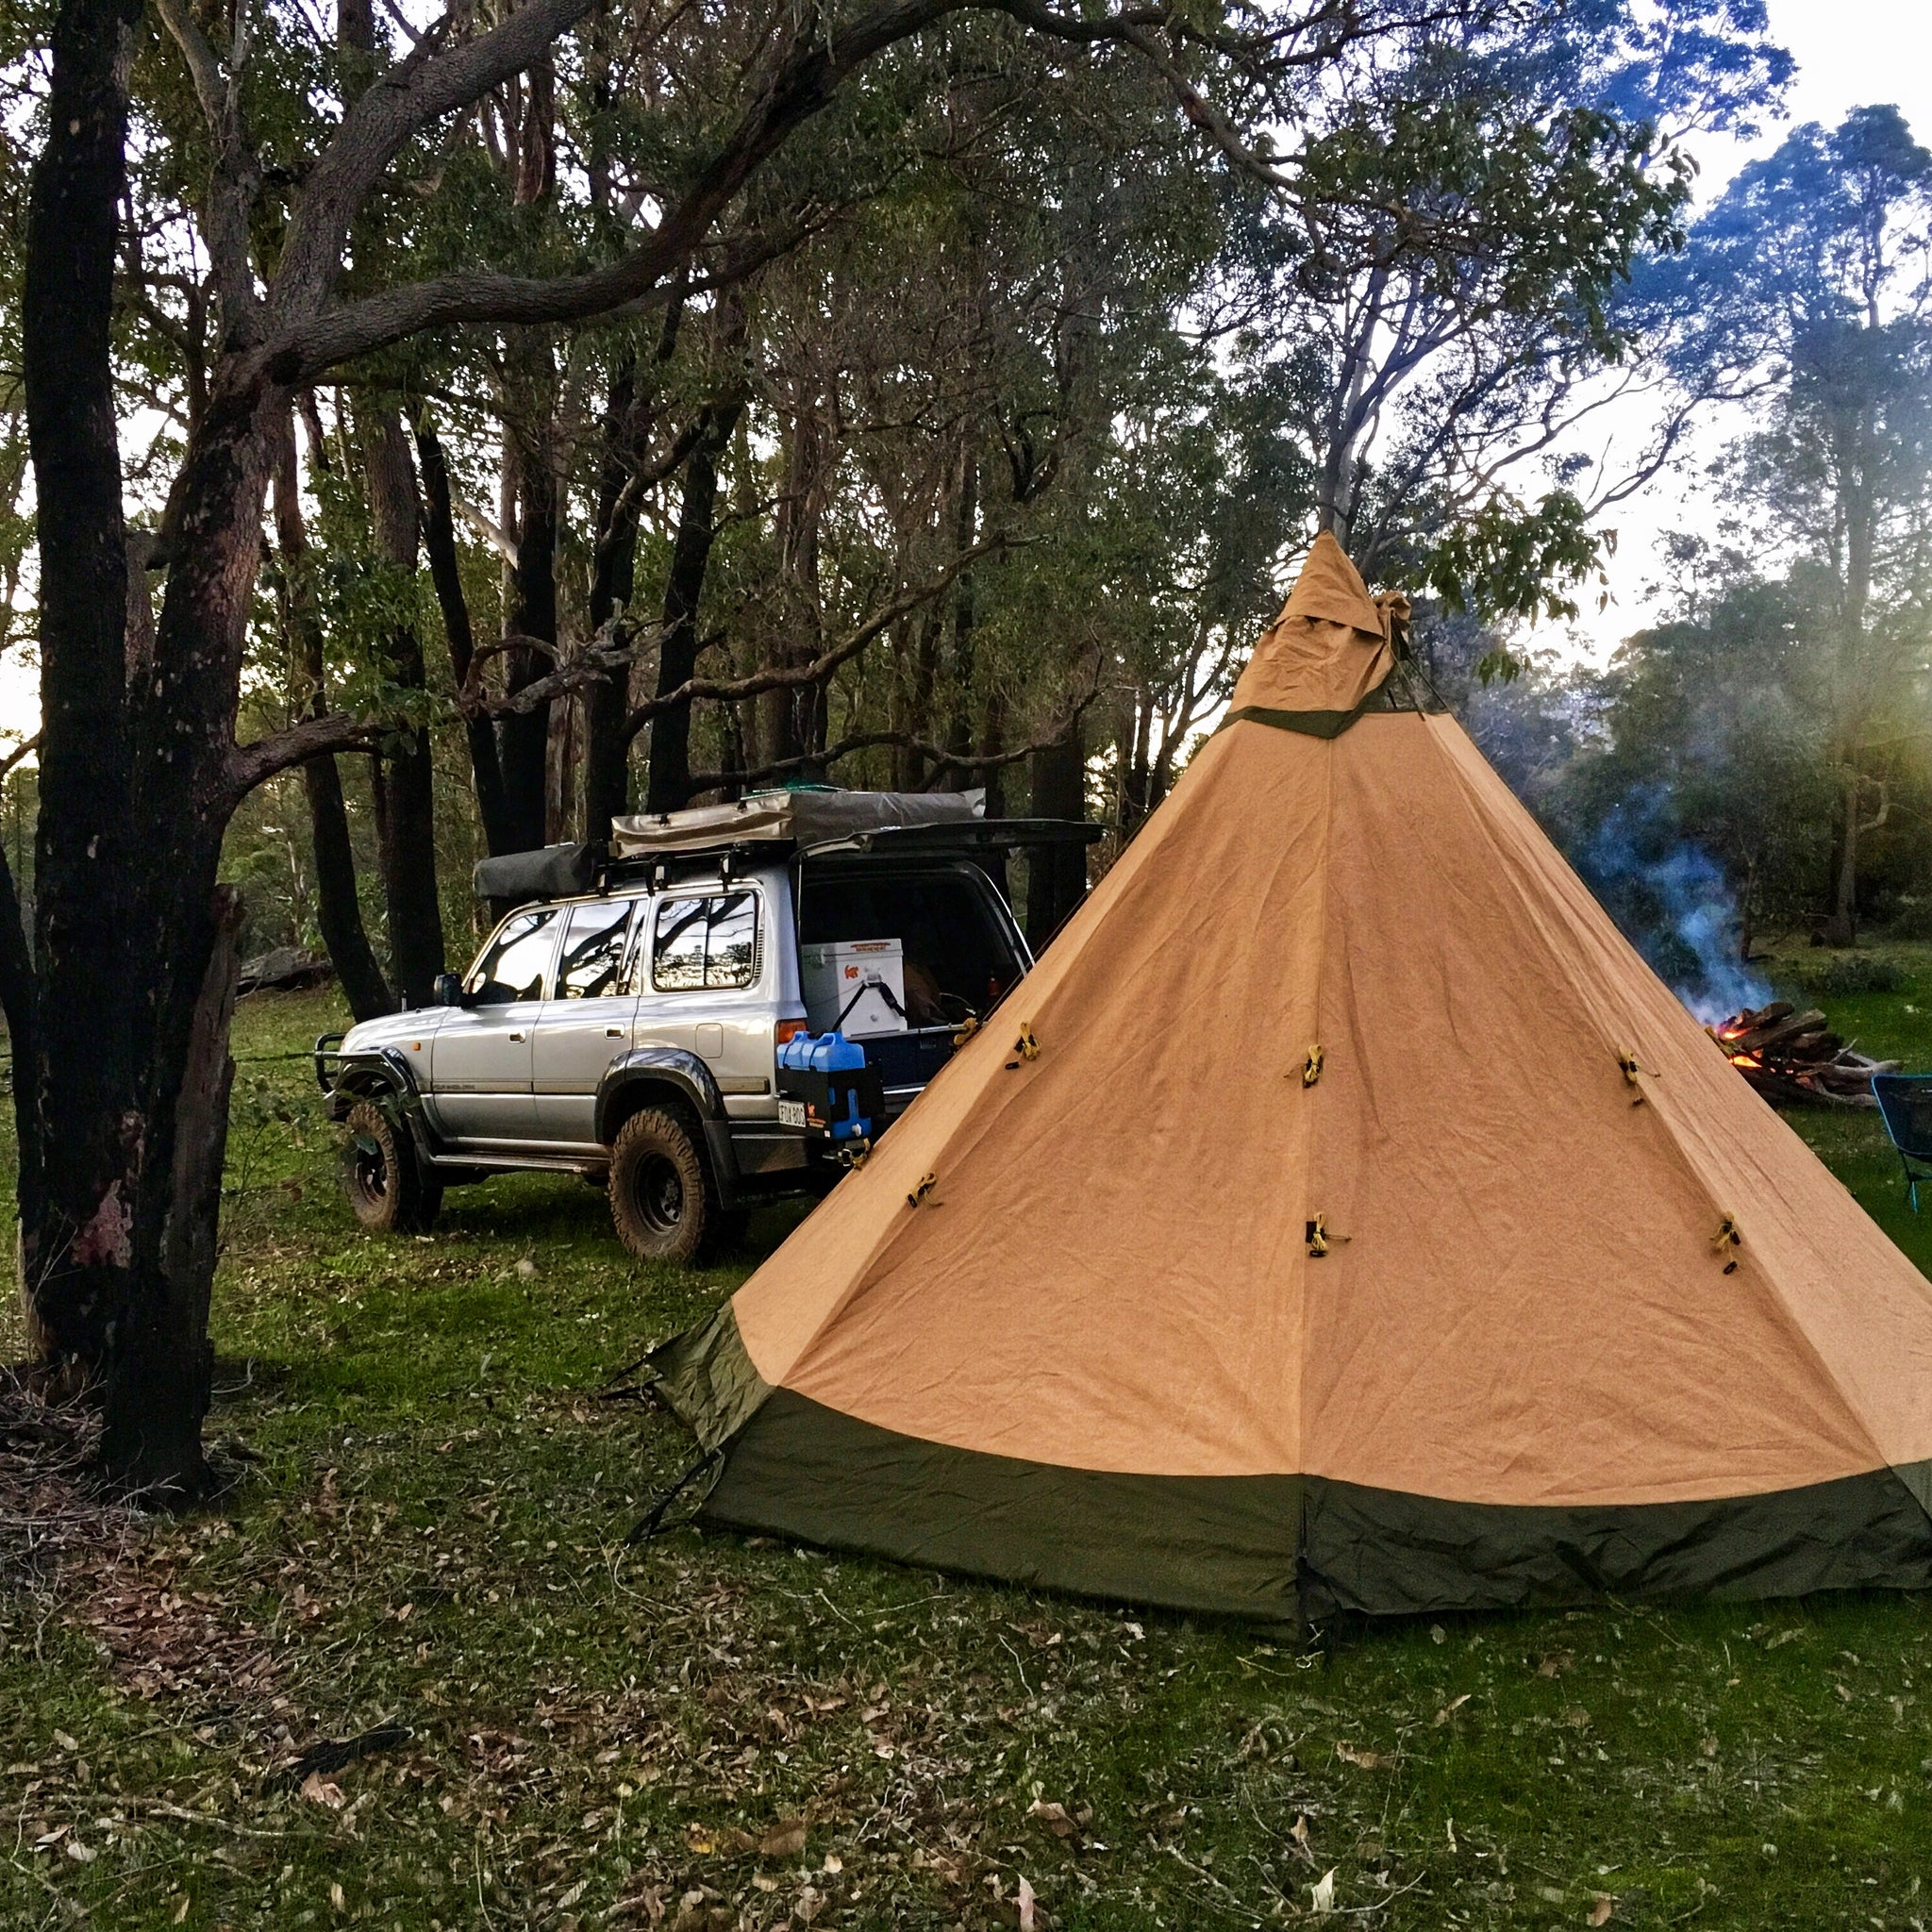 With fast setup time and quality materials the Tentipi Safir 7CP is in a league of it's own. There is no better tent on the market. Compact and light it's perfect for car camping or 4WD touring especially in Australia. We've used our Tentipi for a long 6 month trip in Australia and have been extremely pleased at it's performance in windy weather. The Tentipi Safir 7CP also breathes very well in hot conditions. We have been all through Queensland in the dry season and it's worked fine. This is the best tent we have ever used.